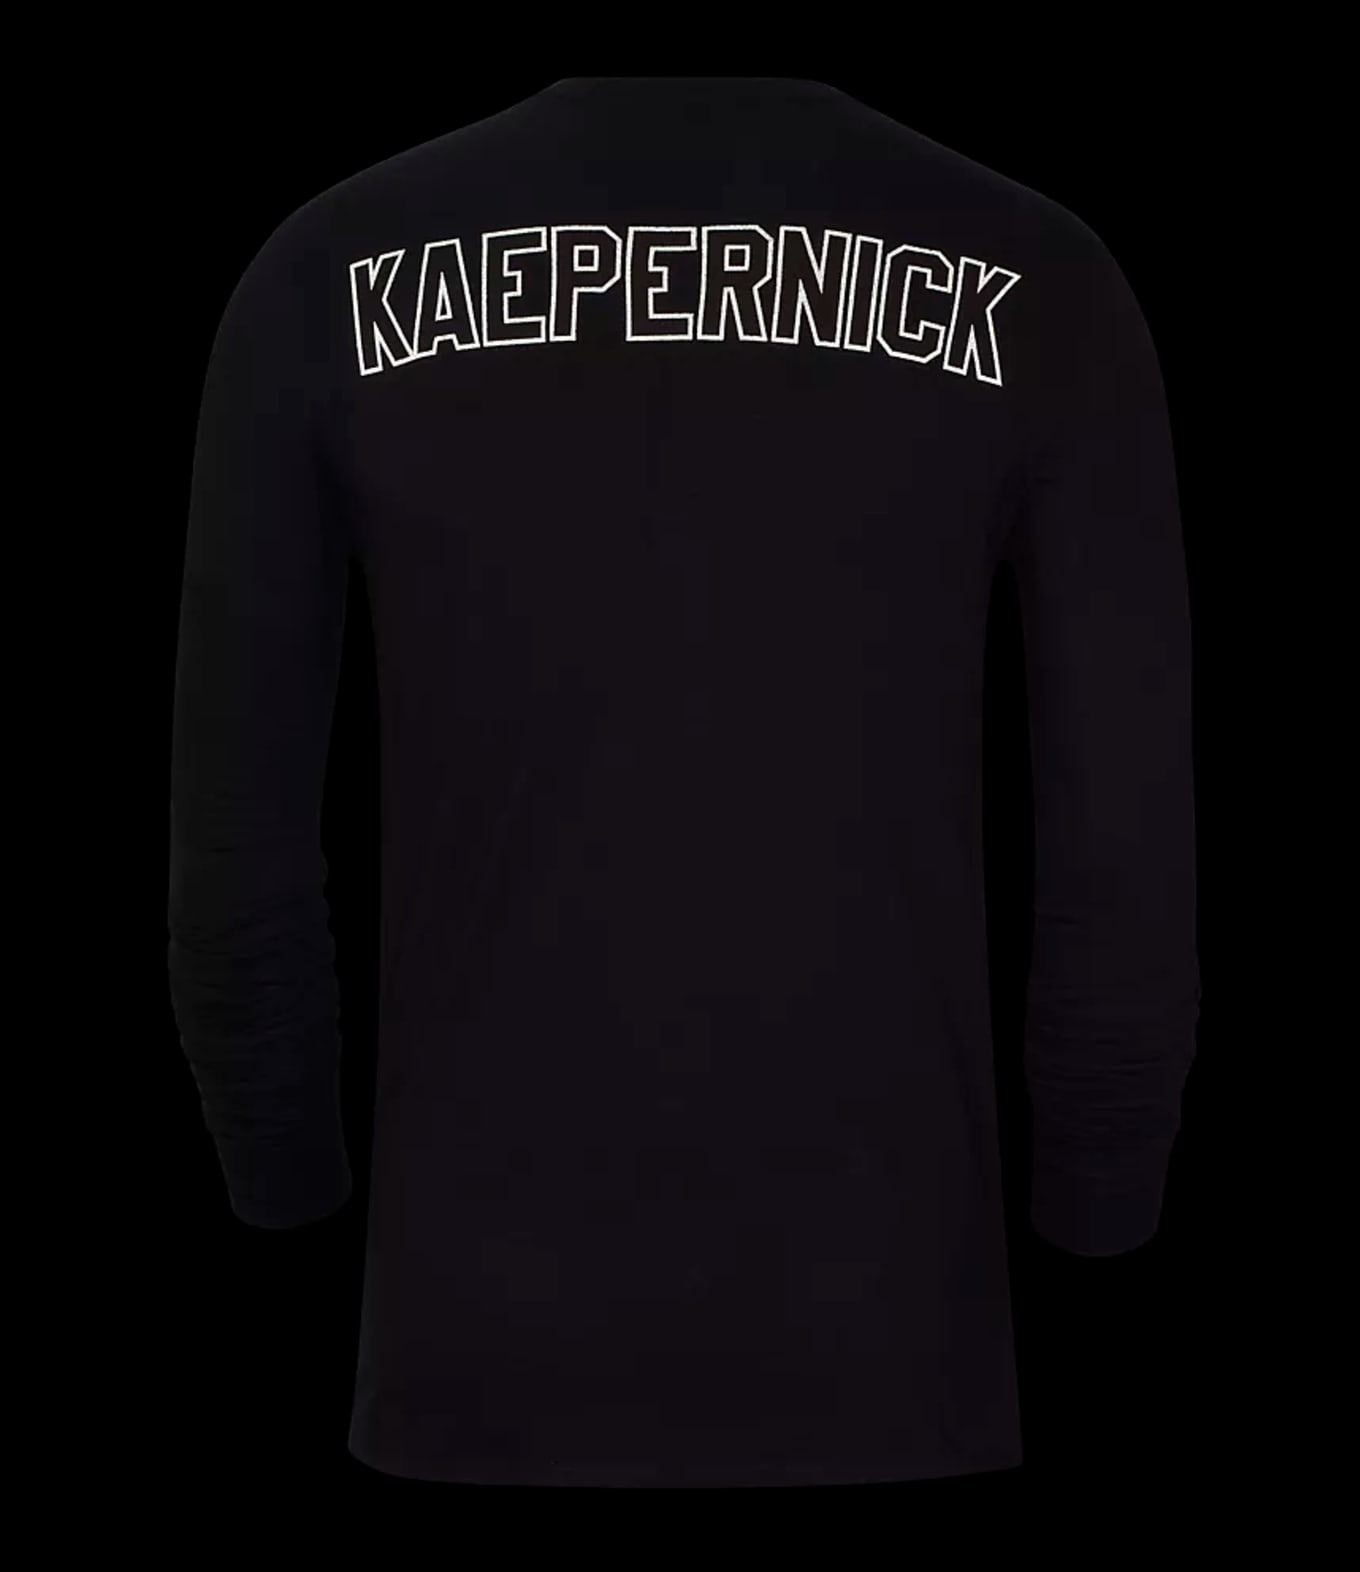 cf15d0571d6 Nike Releases New Colin Kaepernick Gear. Originally seen on LeBron James.